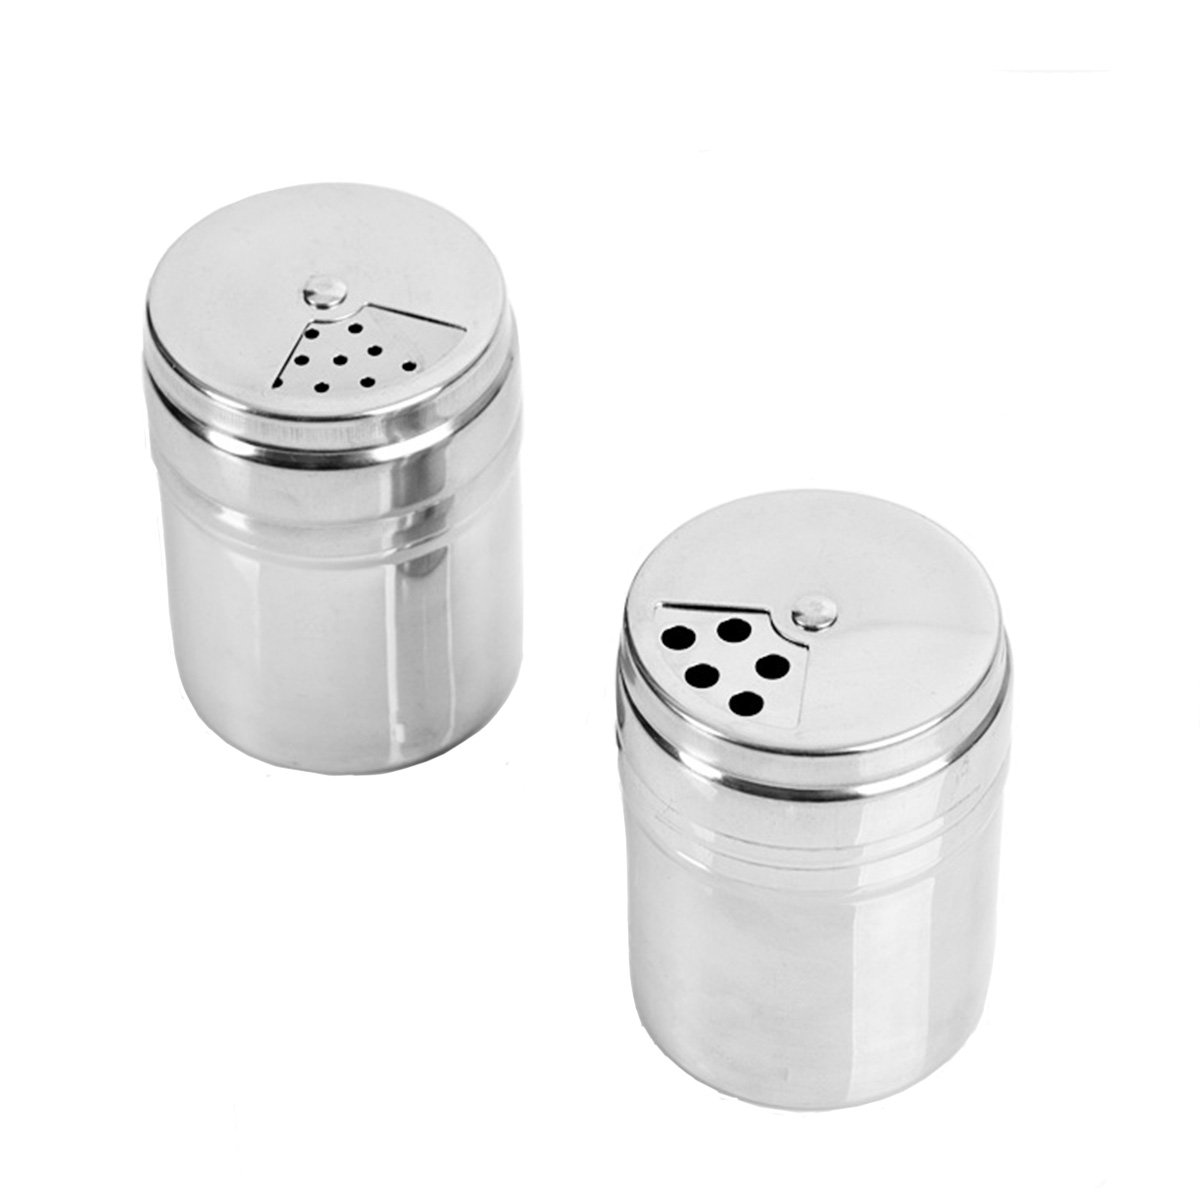 Verdental Stainless Steel Dredge Salt / Sugar / Spice / Pepper Shaker Seasoning Cans with Rotating Cover - 1 PCS WEIZH COMINHKPR95153